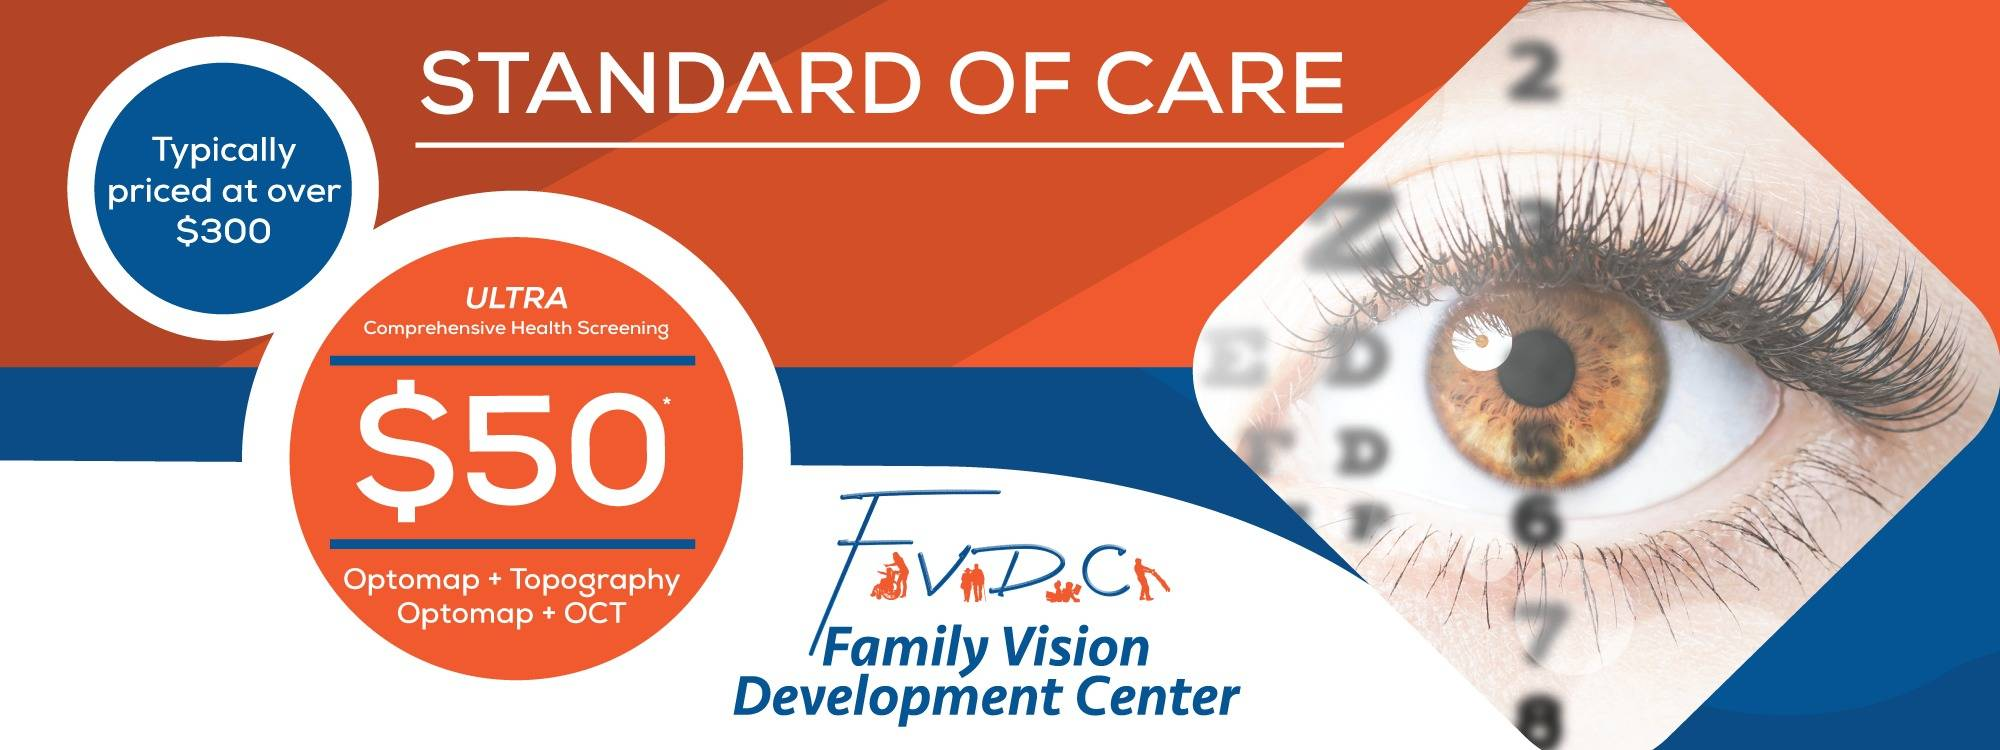 FamilyVisionDevelopmentCenter StandardofCareWebtile